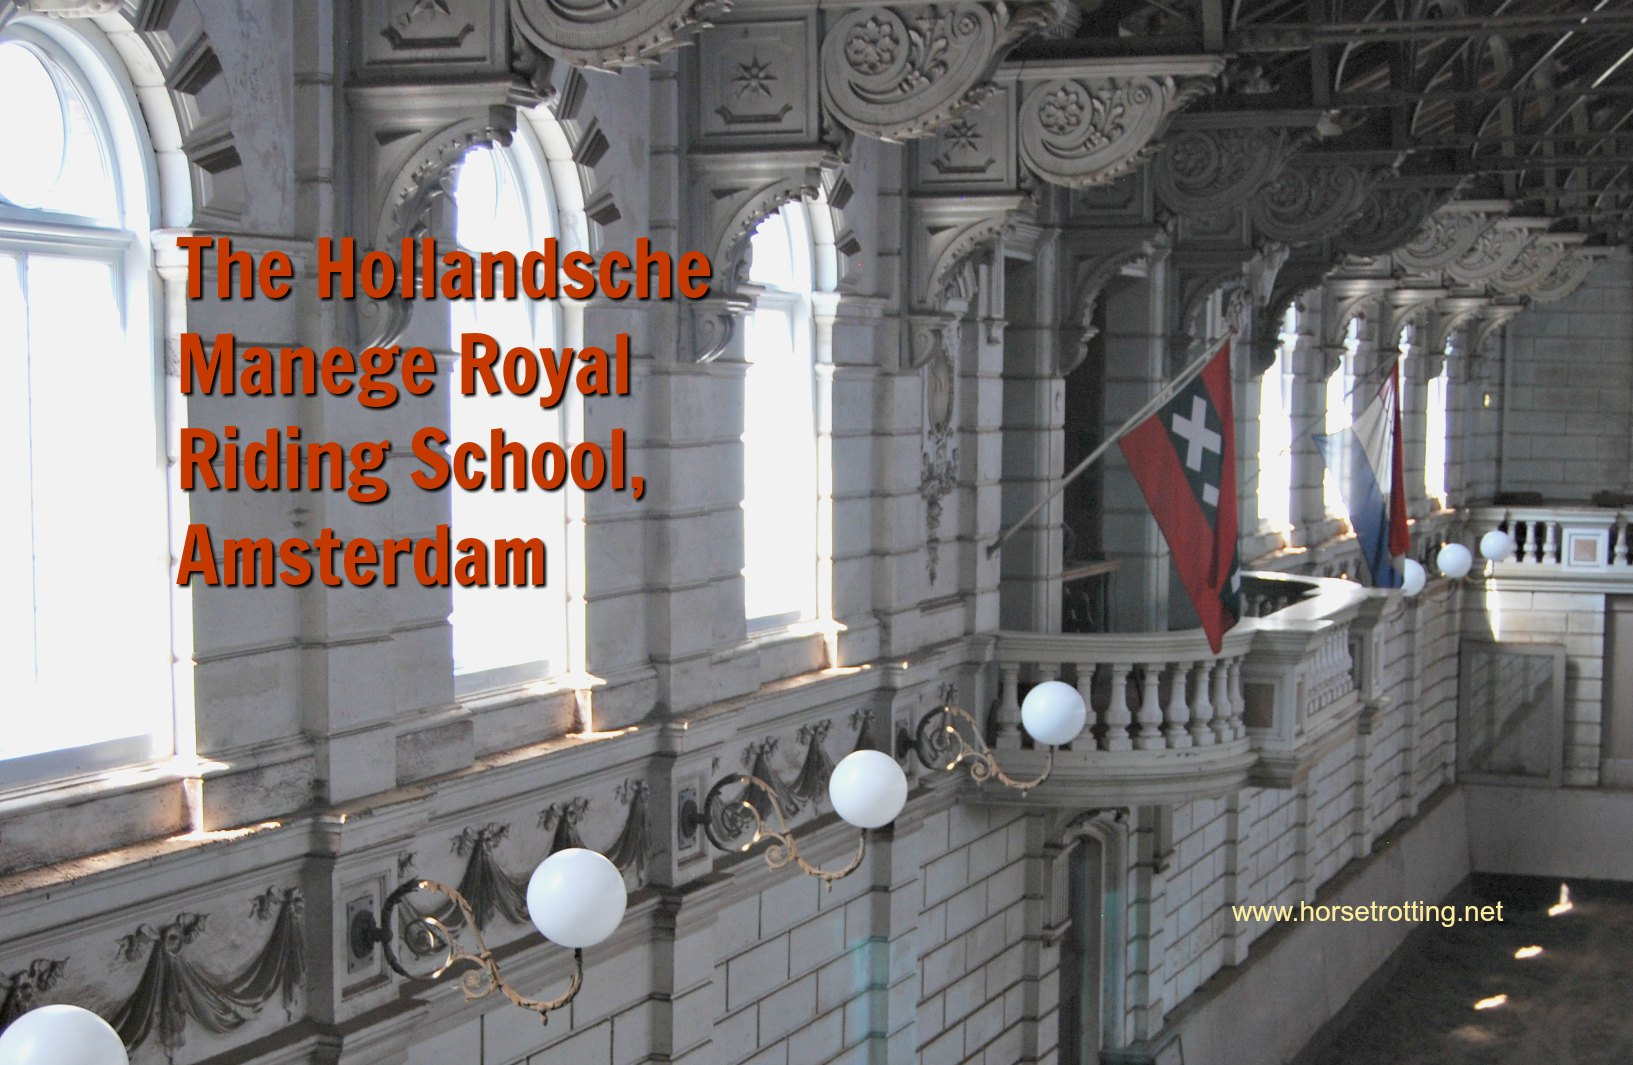 the Hollandsche Manege Royal Riding School indoor arena